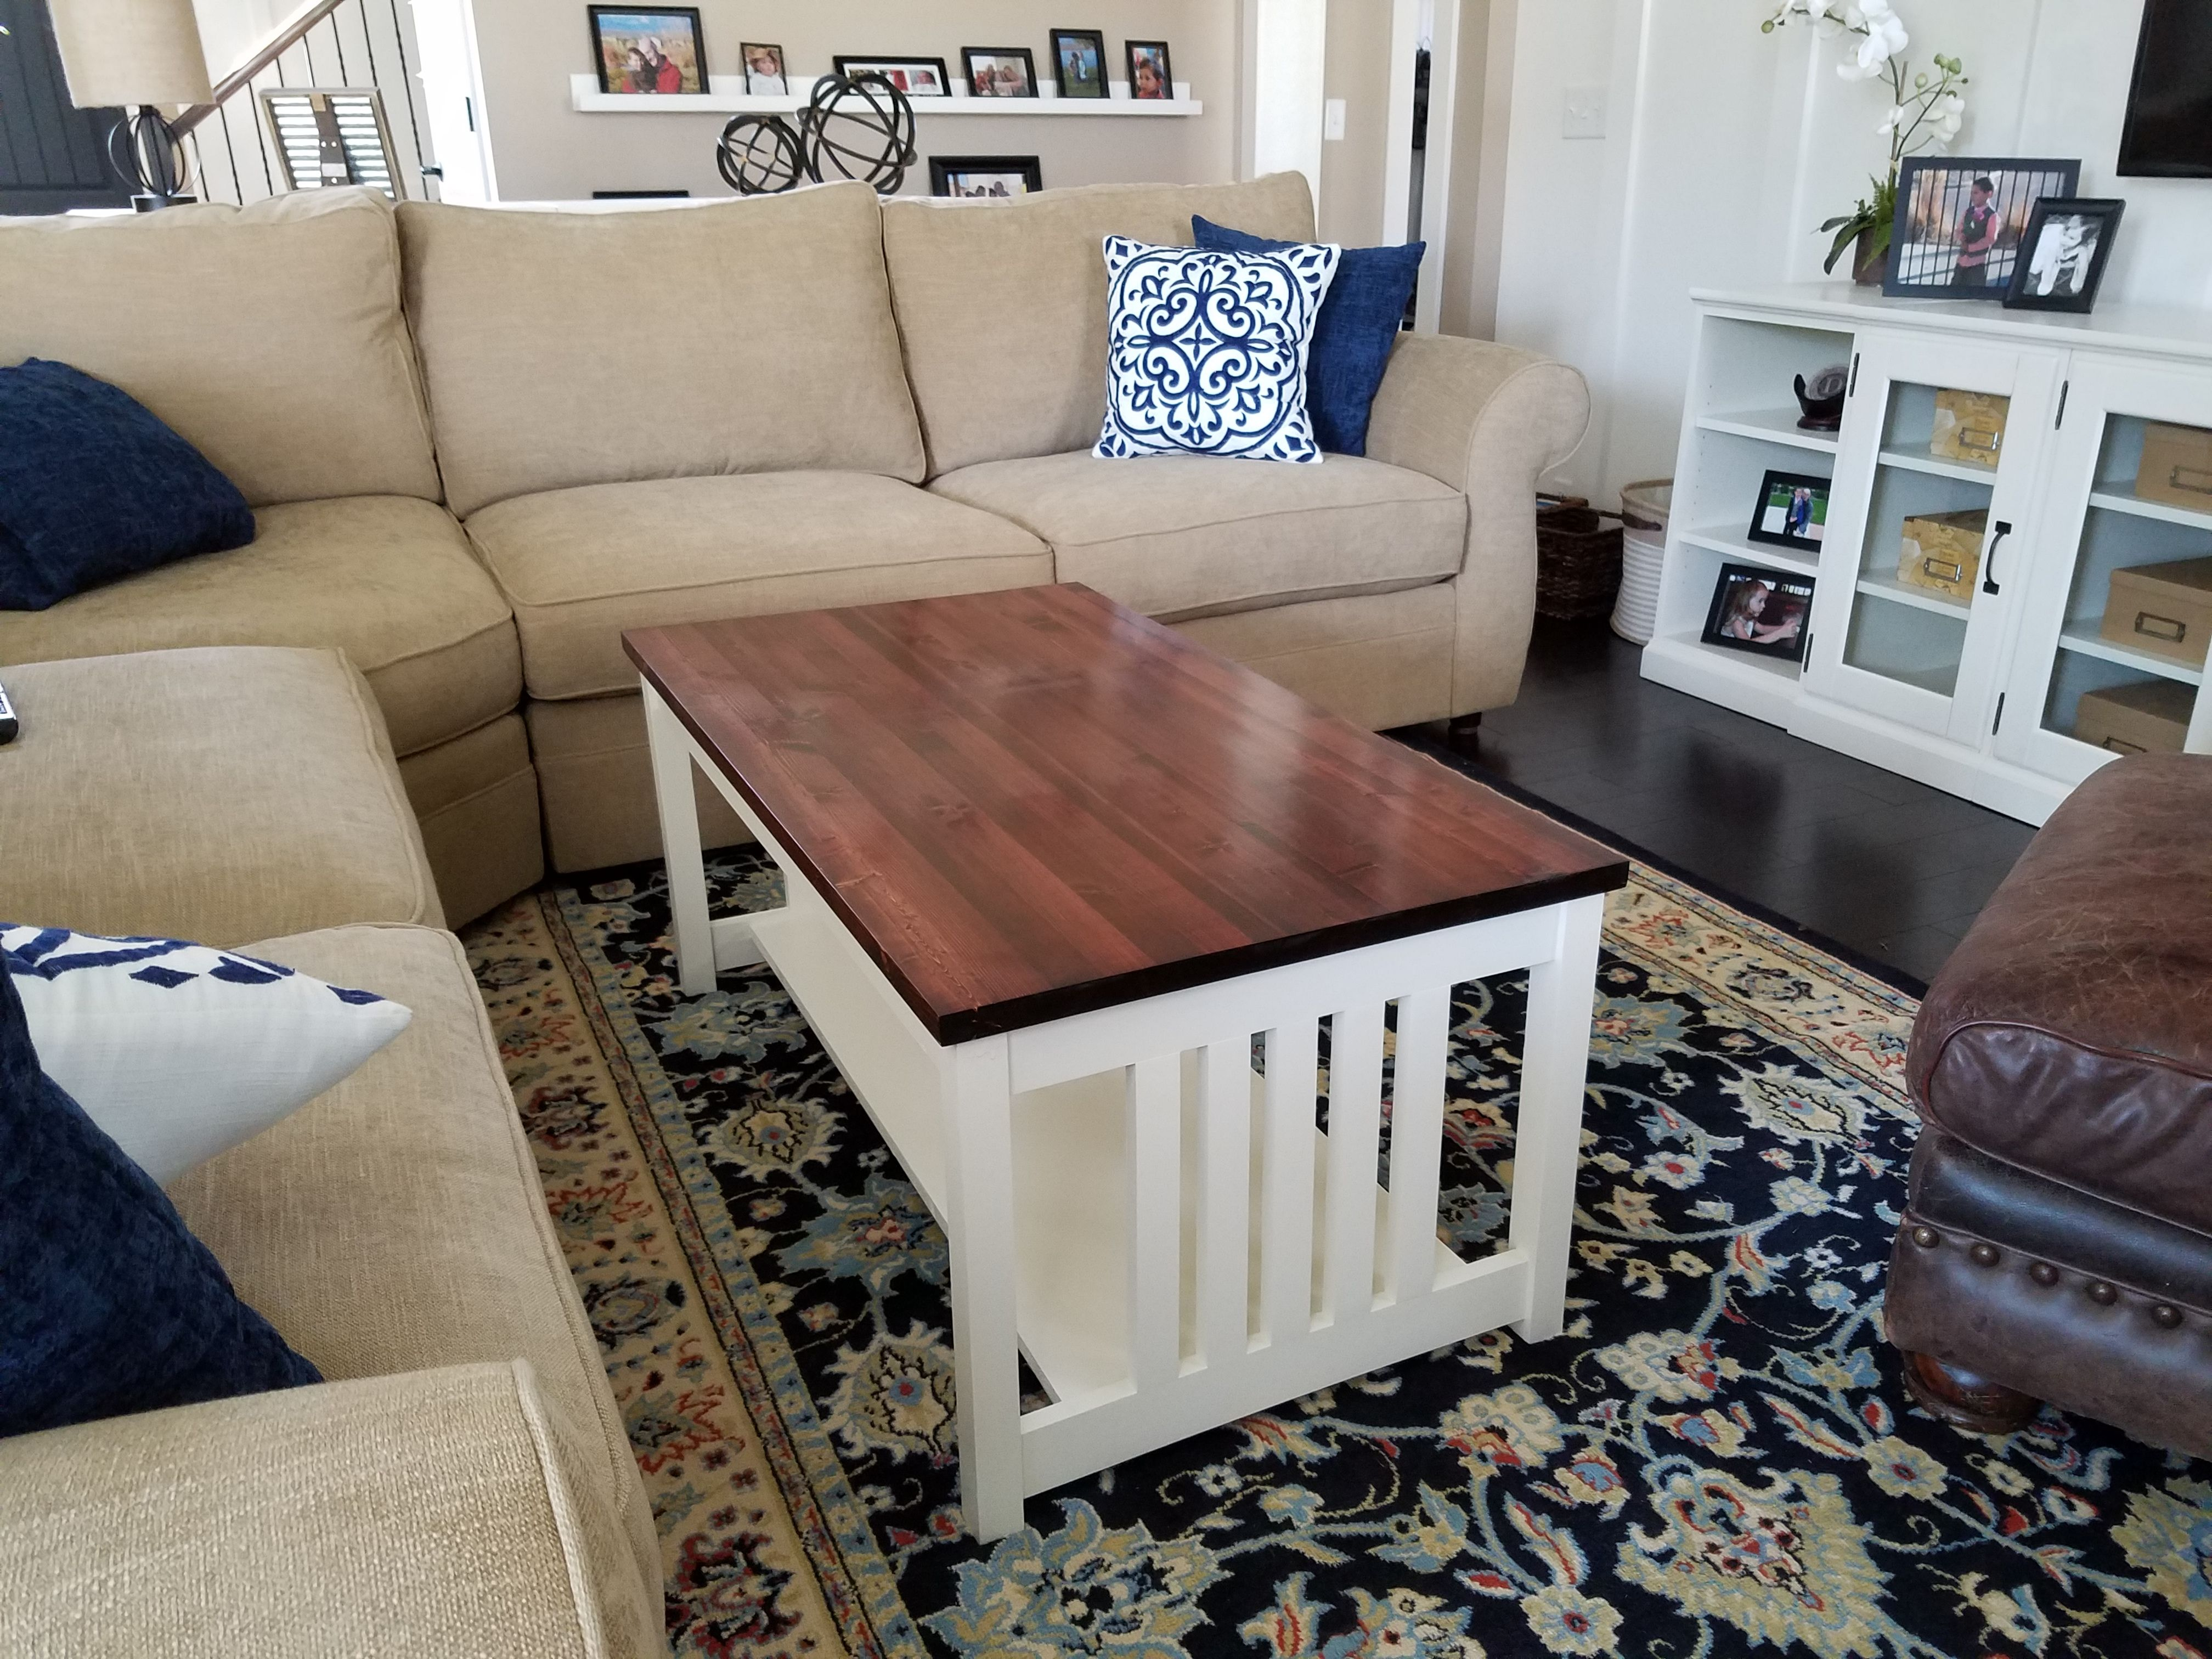 - I Made Furniture! Shaker/Craftsman Style Coffee Table - Resubmit